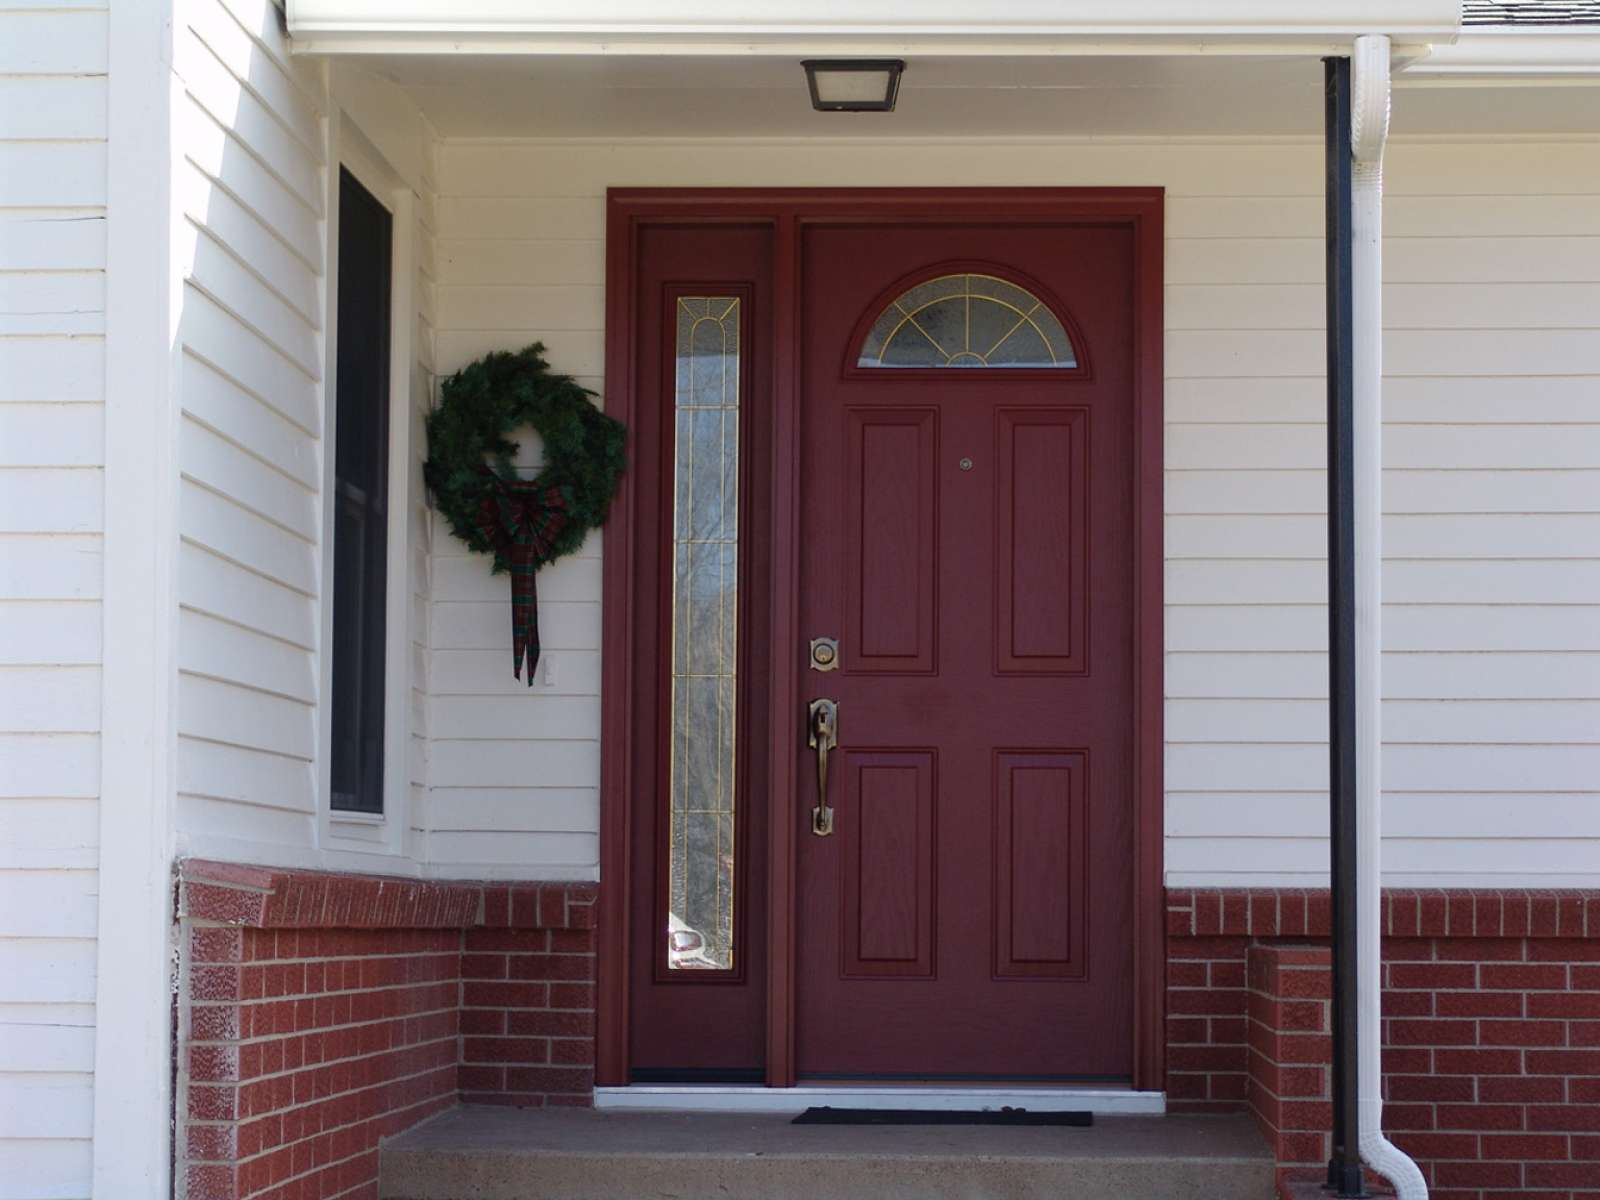 Fiberglass Exterior Doors For Home : Heritage fiberglass entry doors